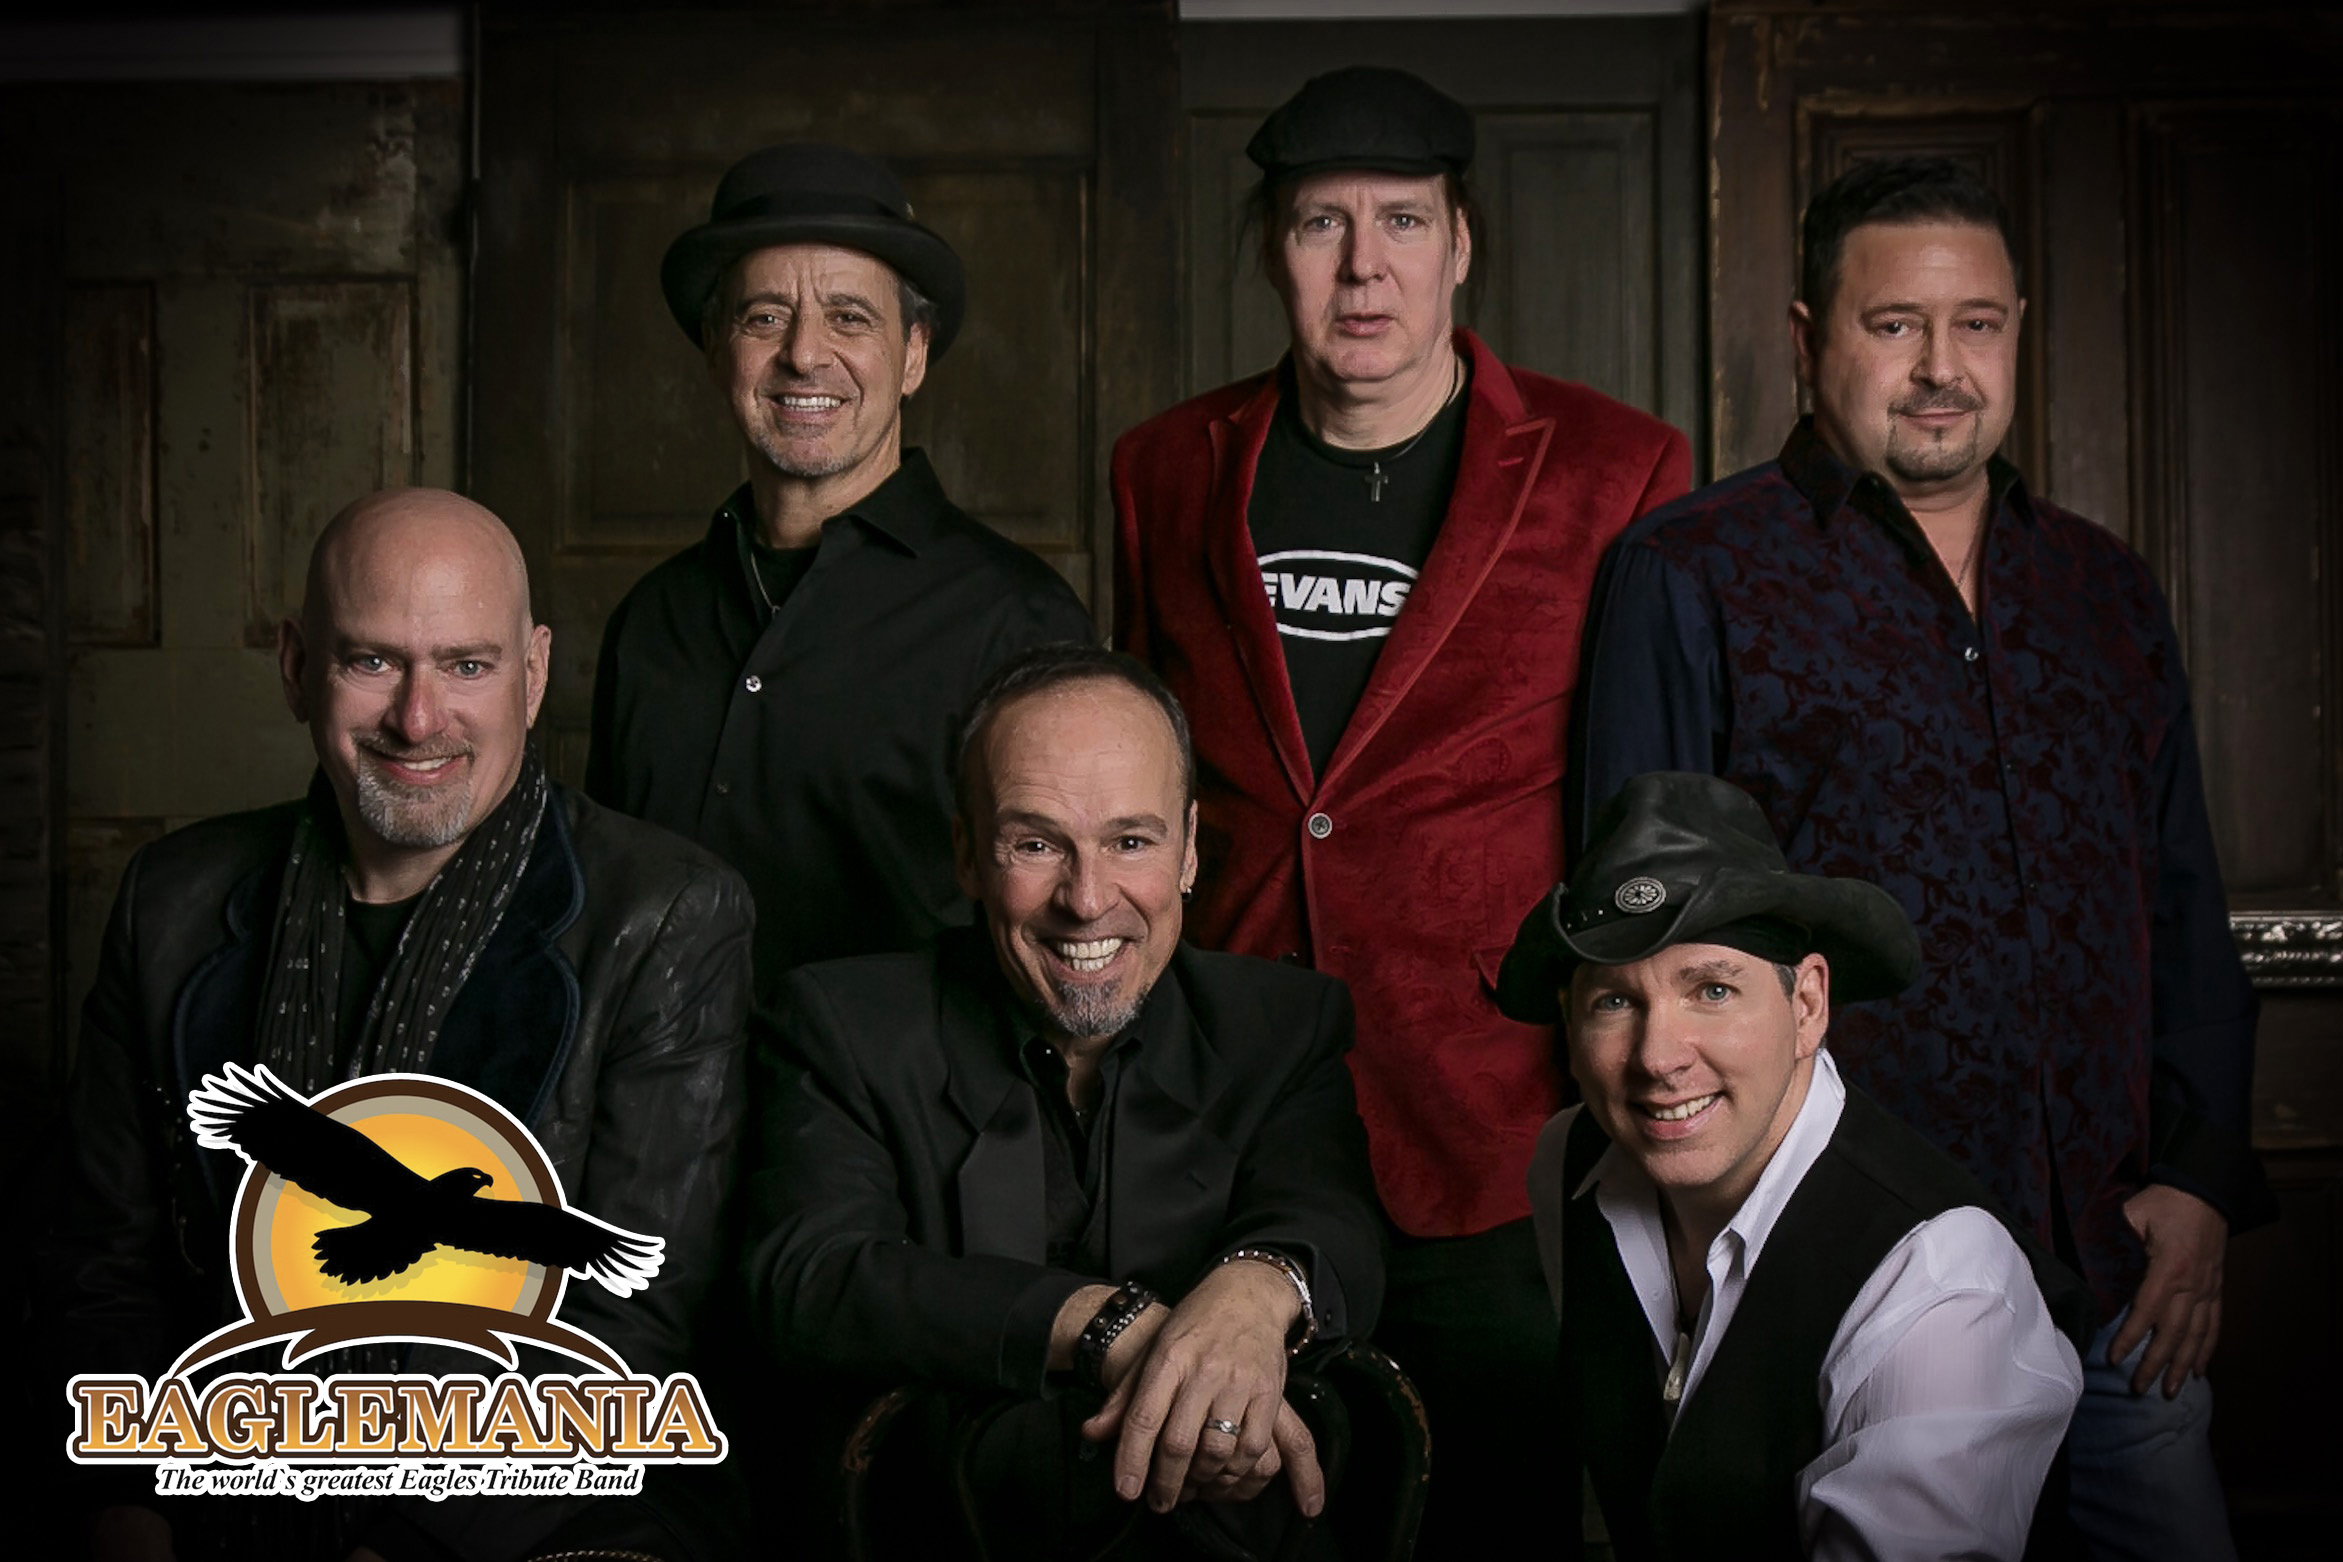 Trick or Tickets to see Eaglemania at The Meyer Theater!